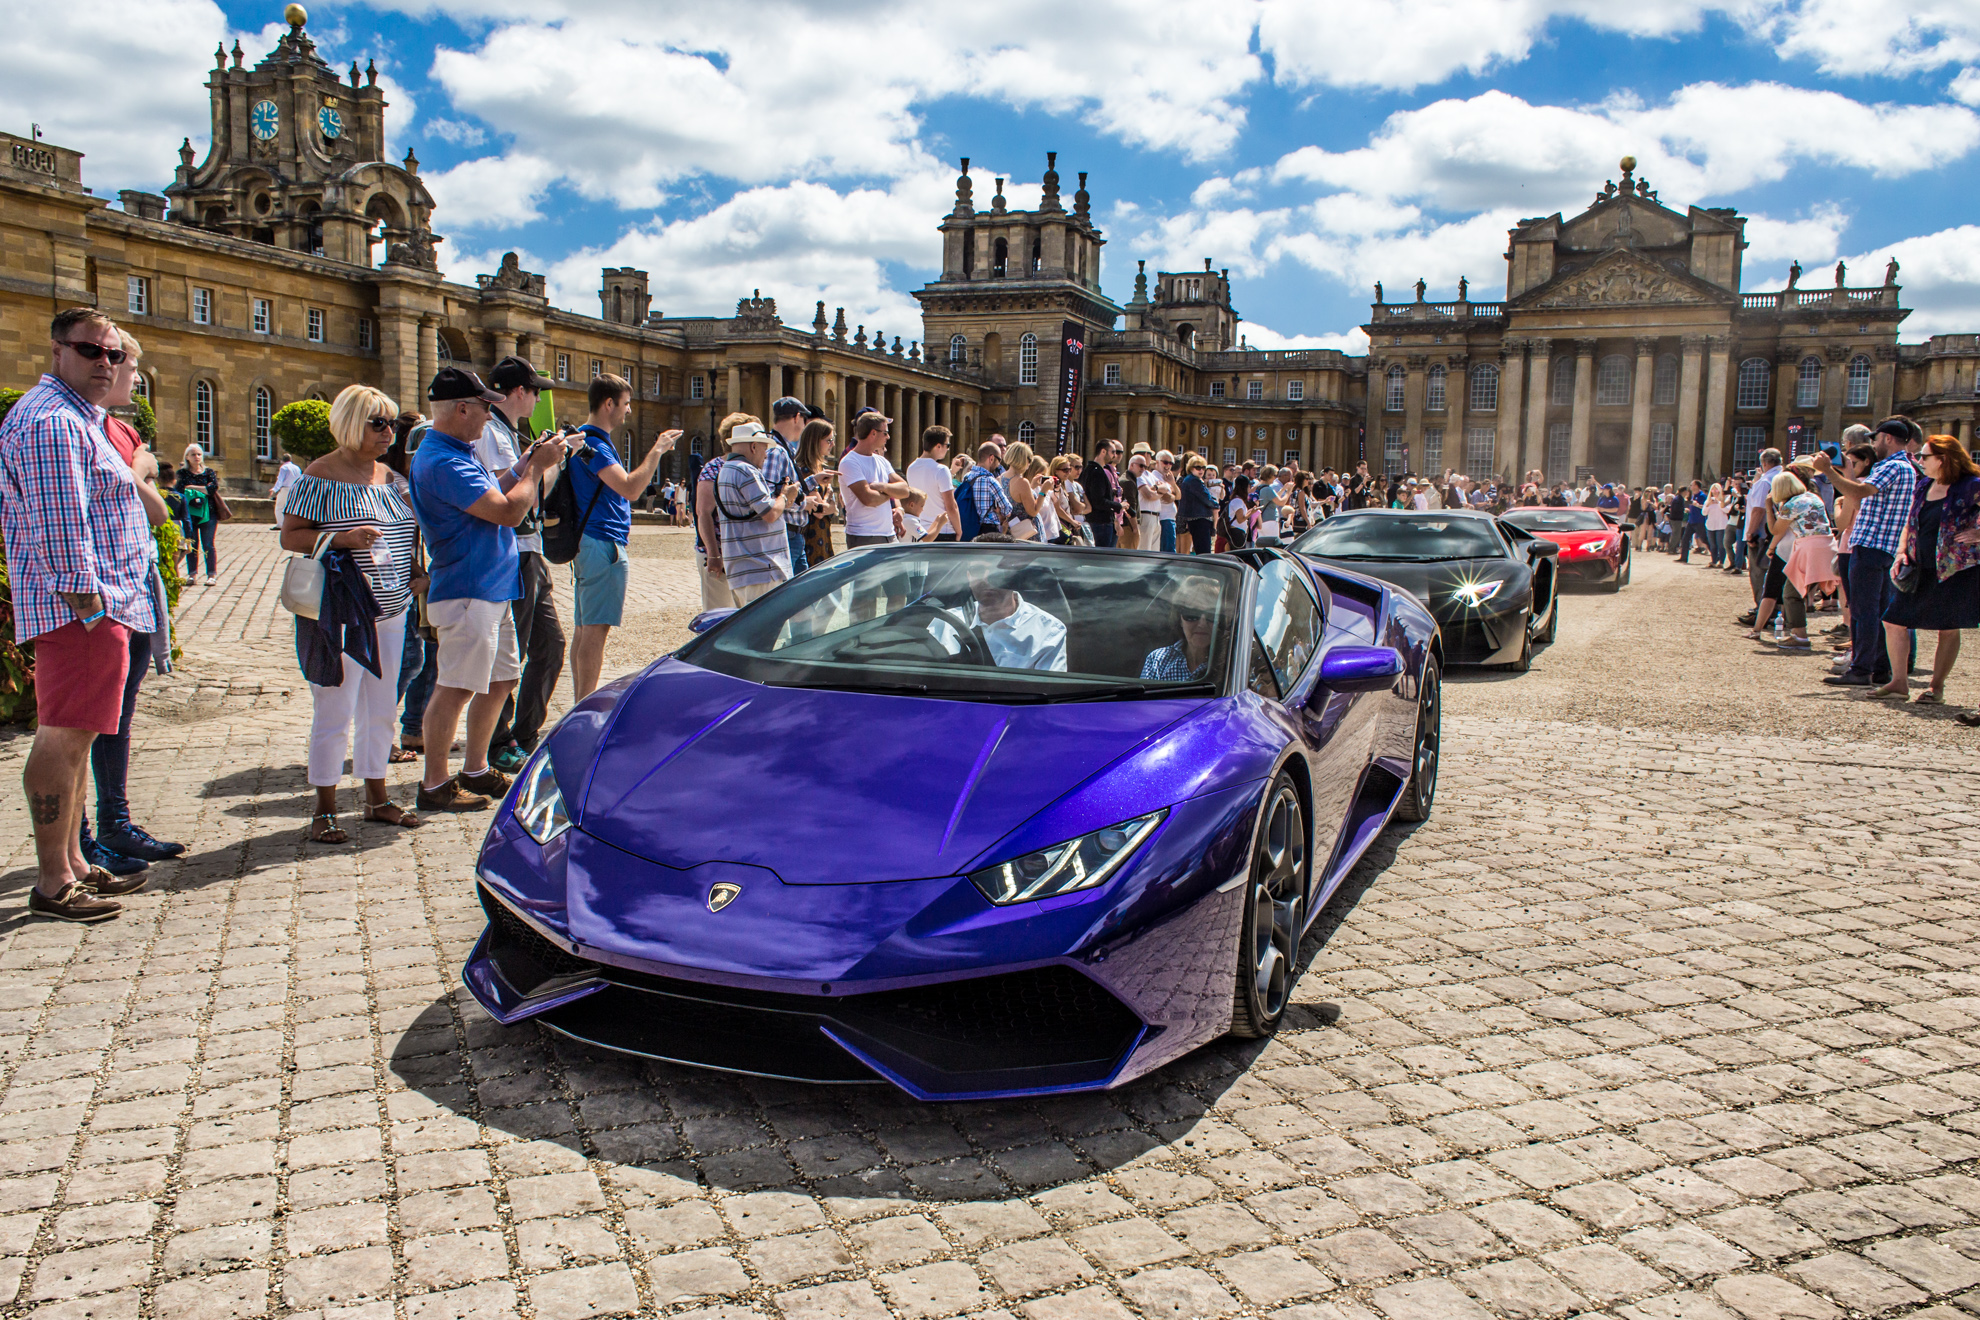 Supercars at the Palace